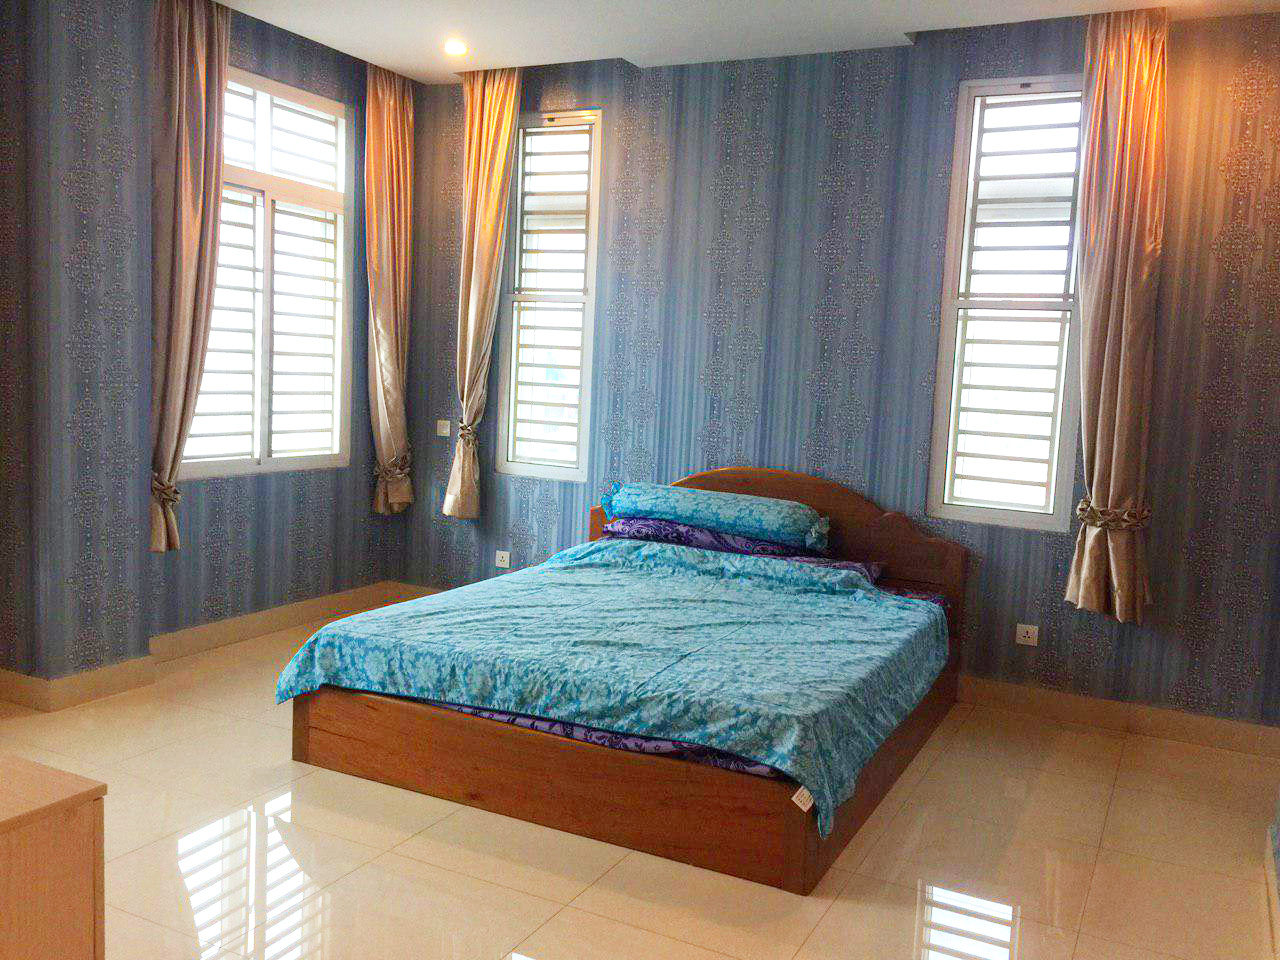 10-room whole apartment for rent @ Boeung Trabaek area